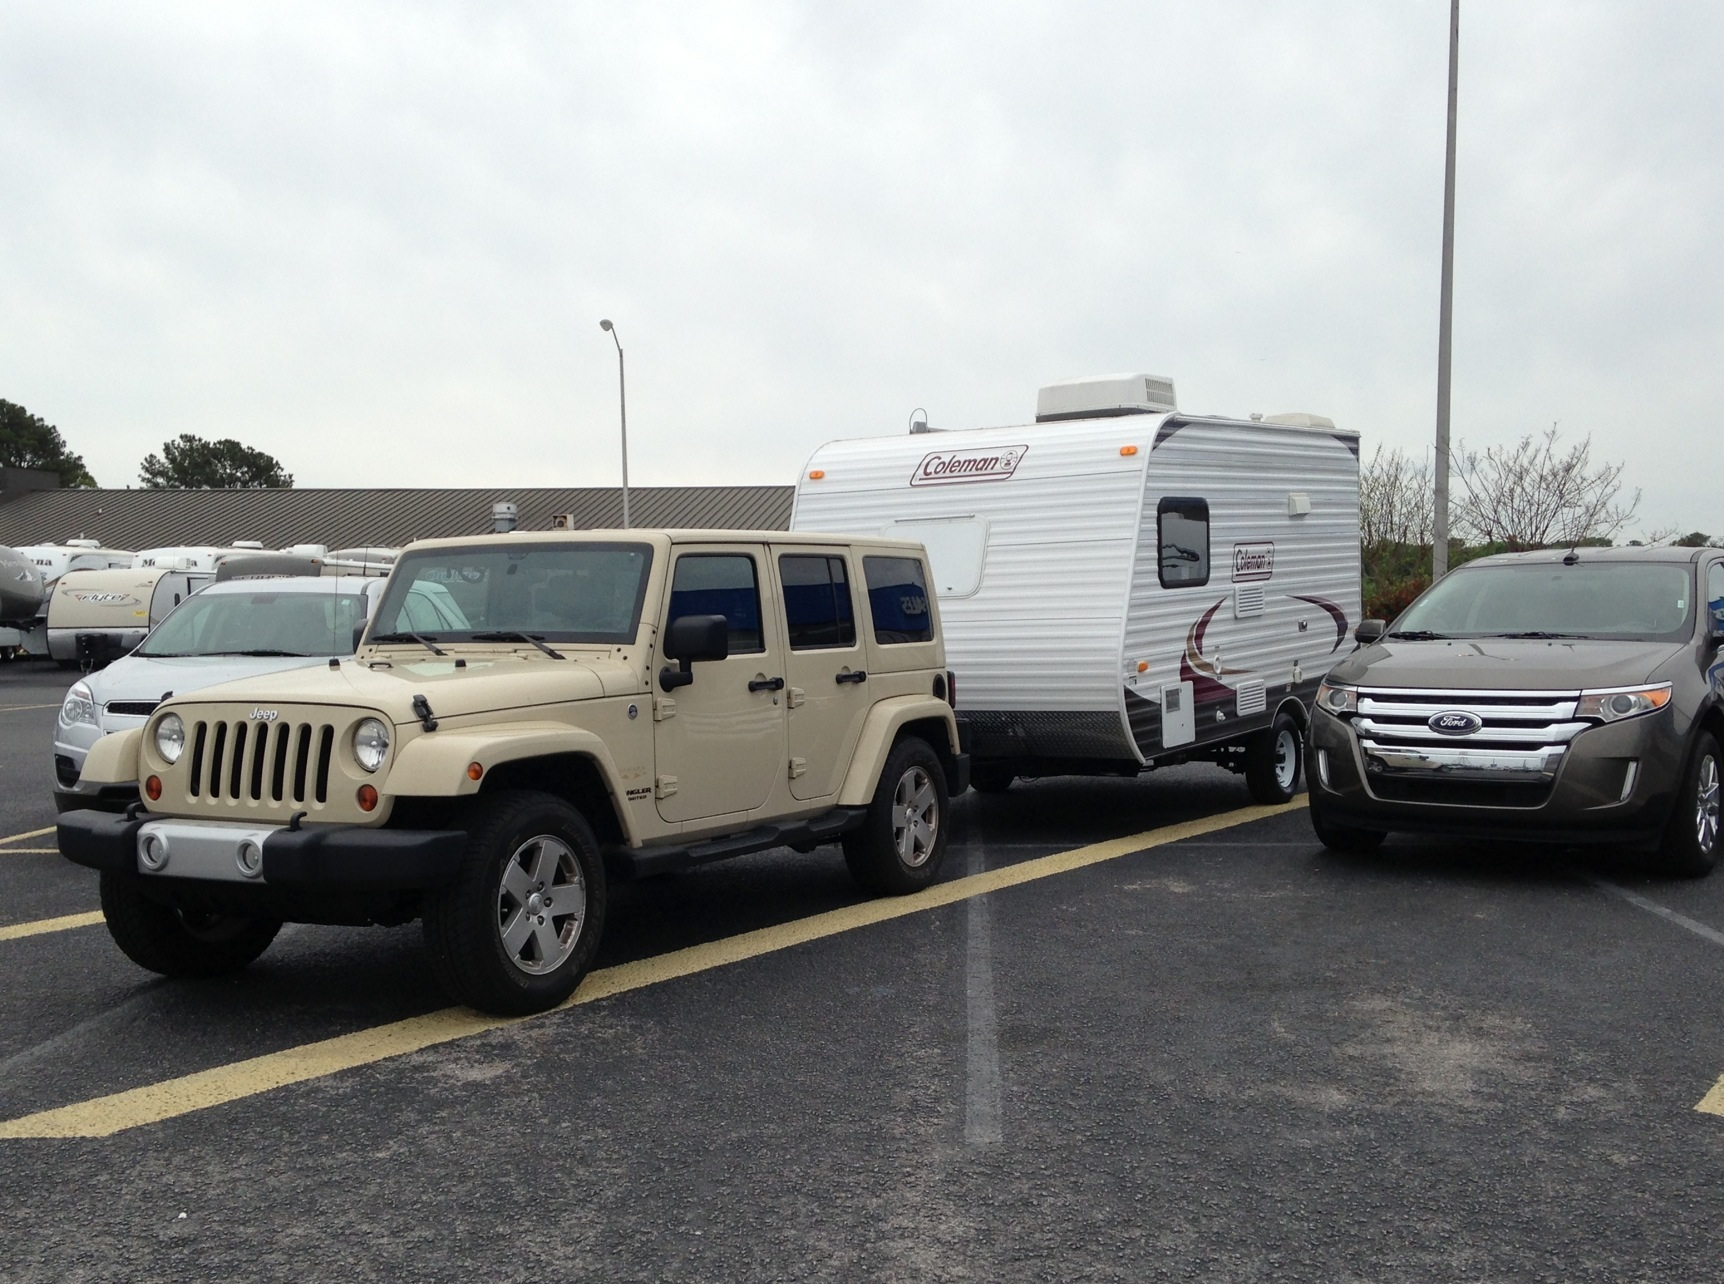 newbies towing a tt with a jeep wrangler unlimited. Black Bedroom Furniture Sets. Home Design Ideas